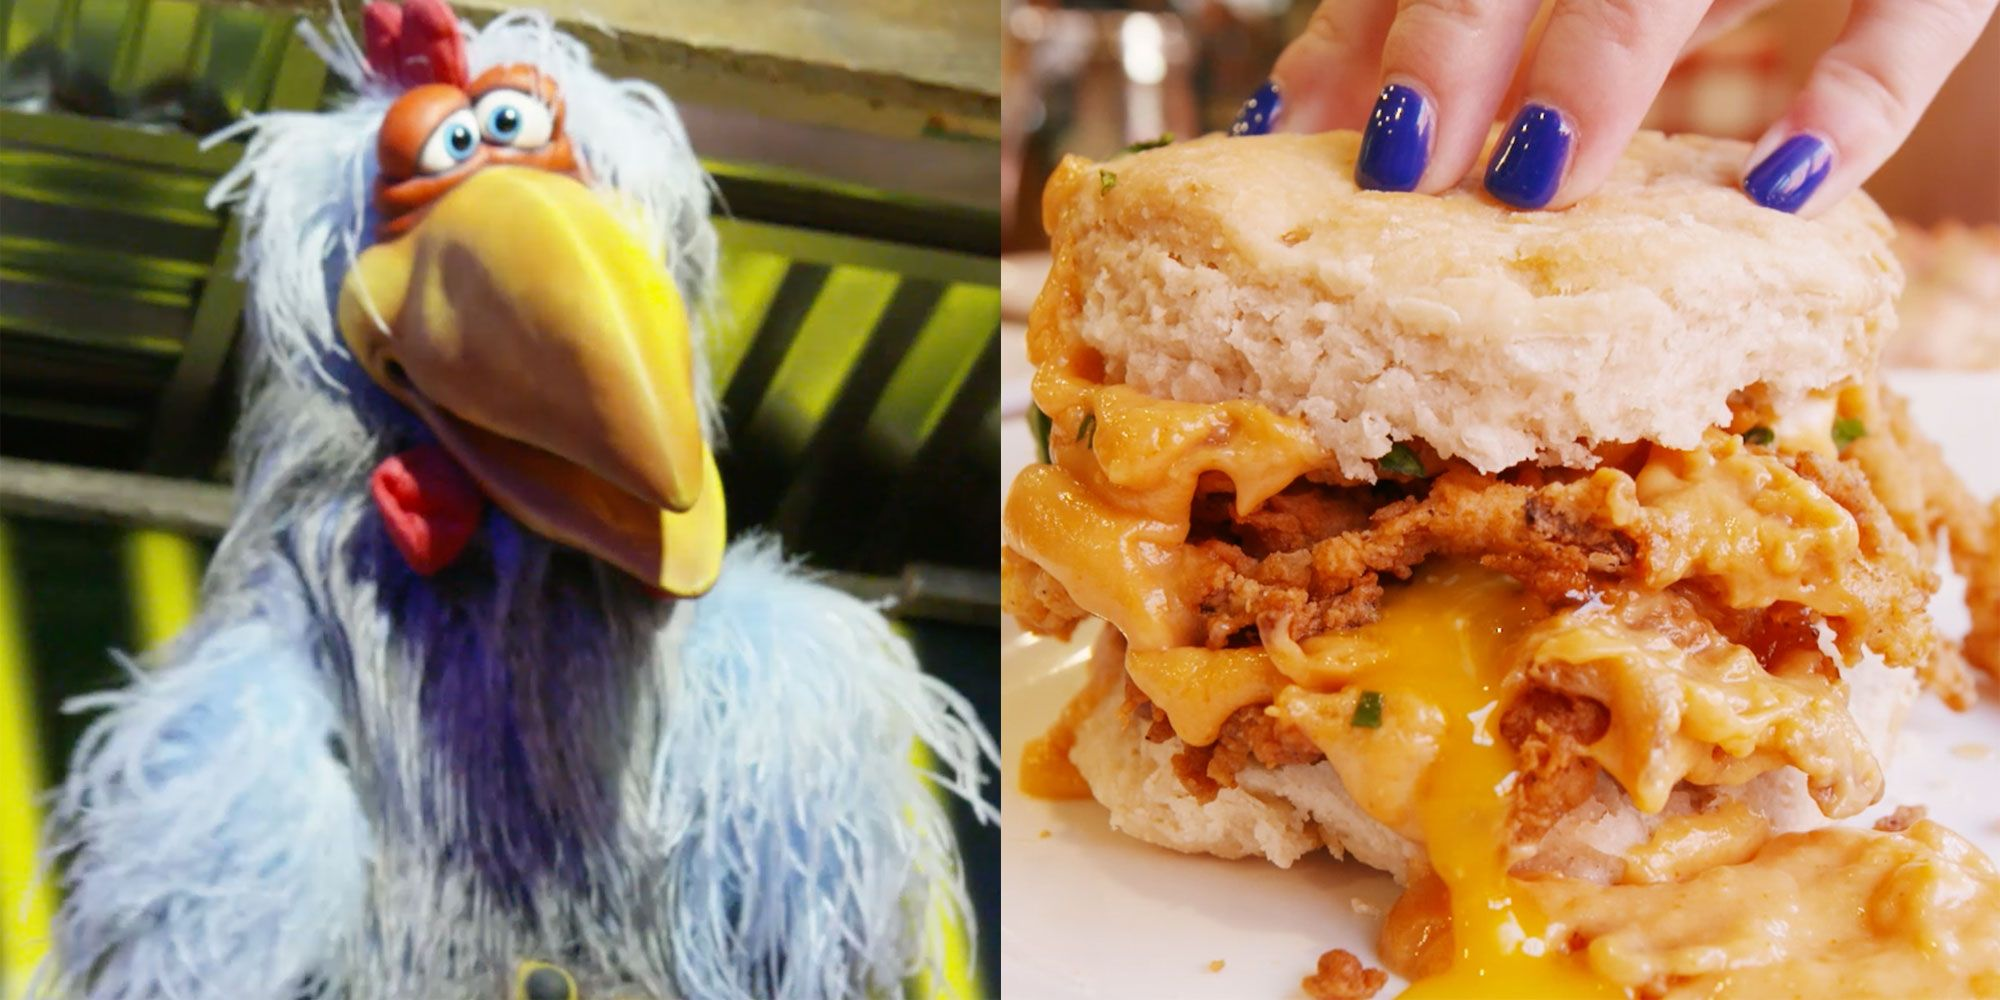 This Chicken Restaurant Features More Than 1,000 Animatronic Chickens